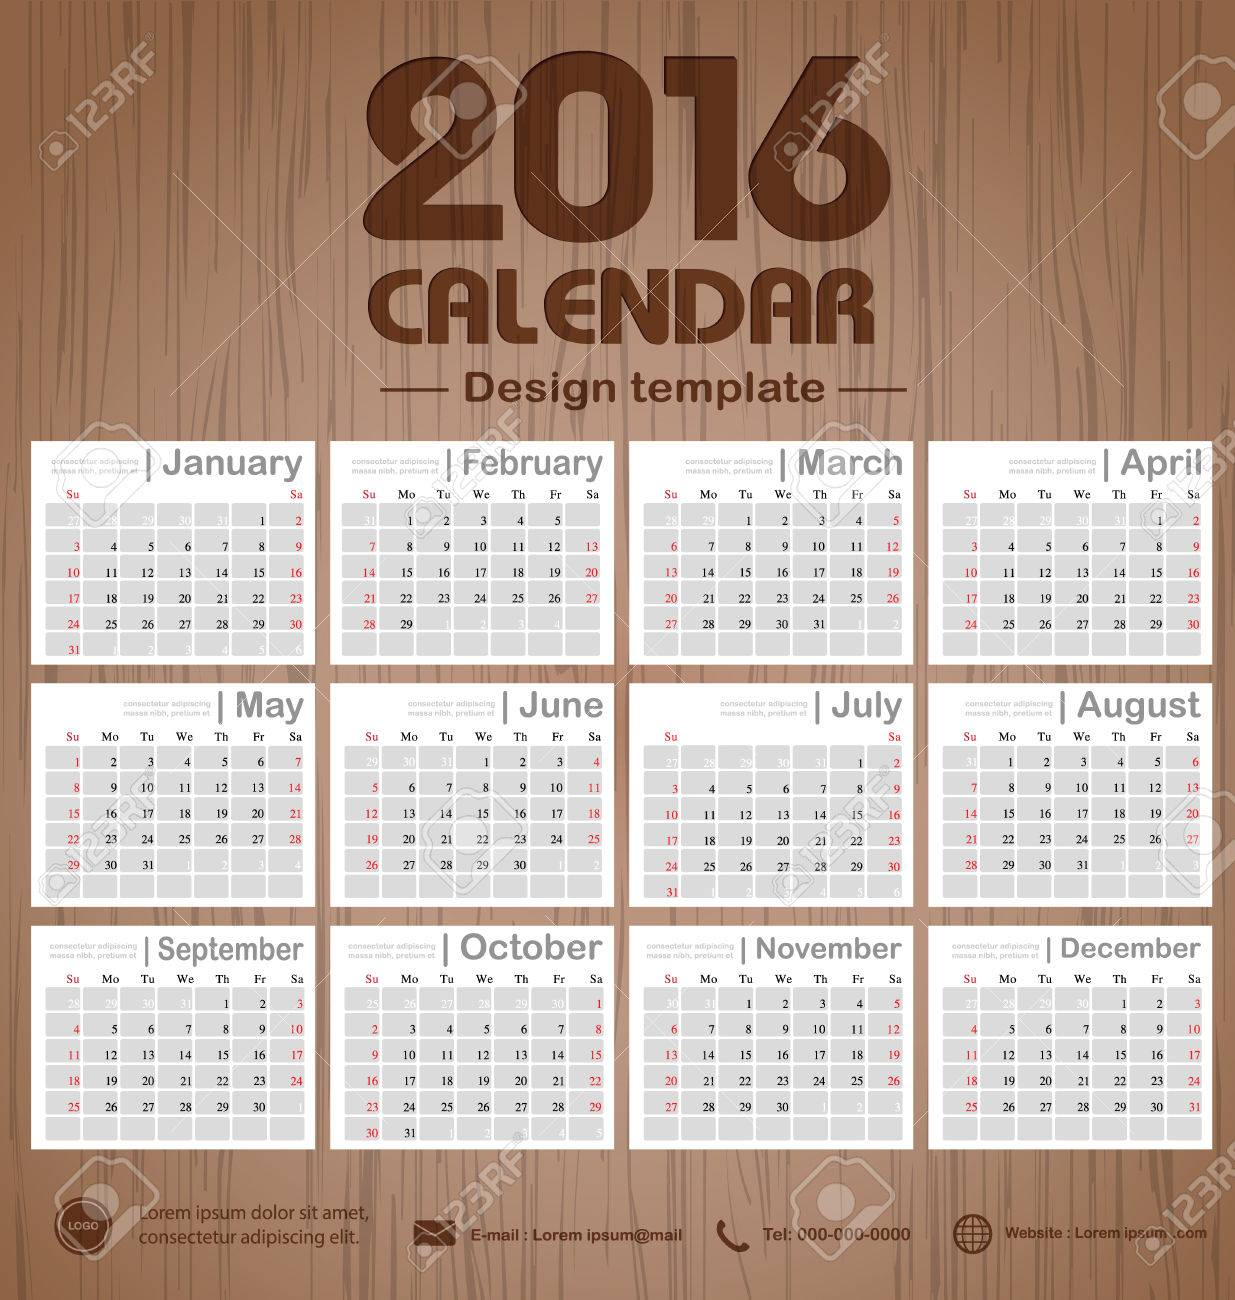 Office Calendar 2016 : Calendar wooden engraving background texture design template